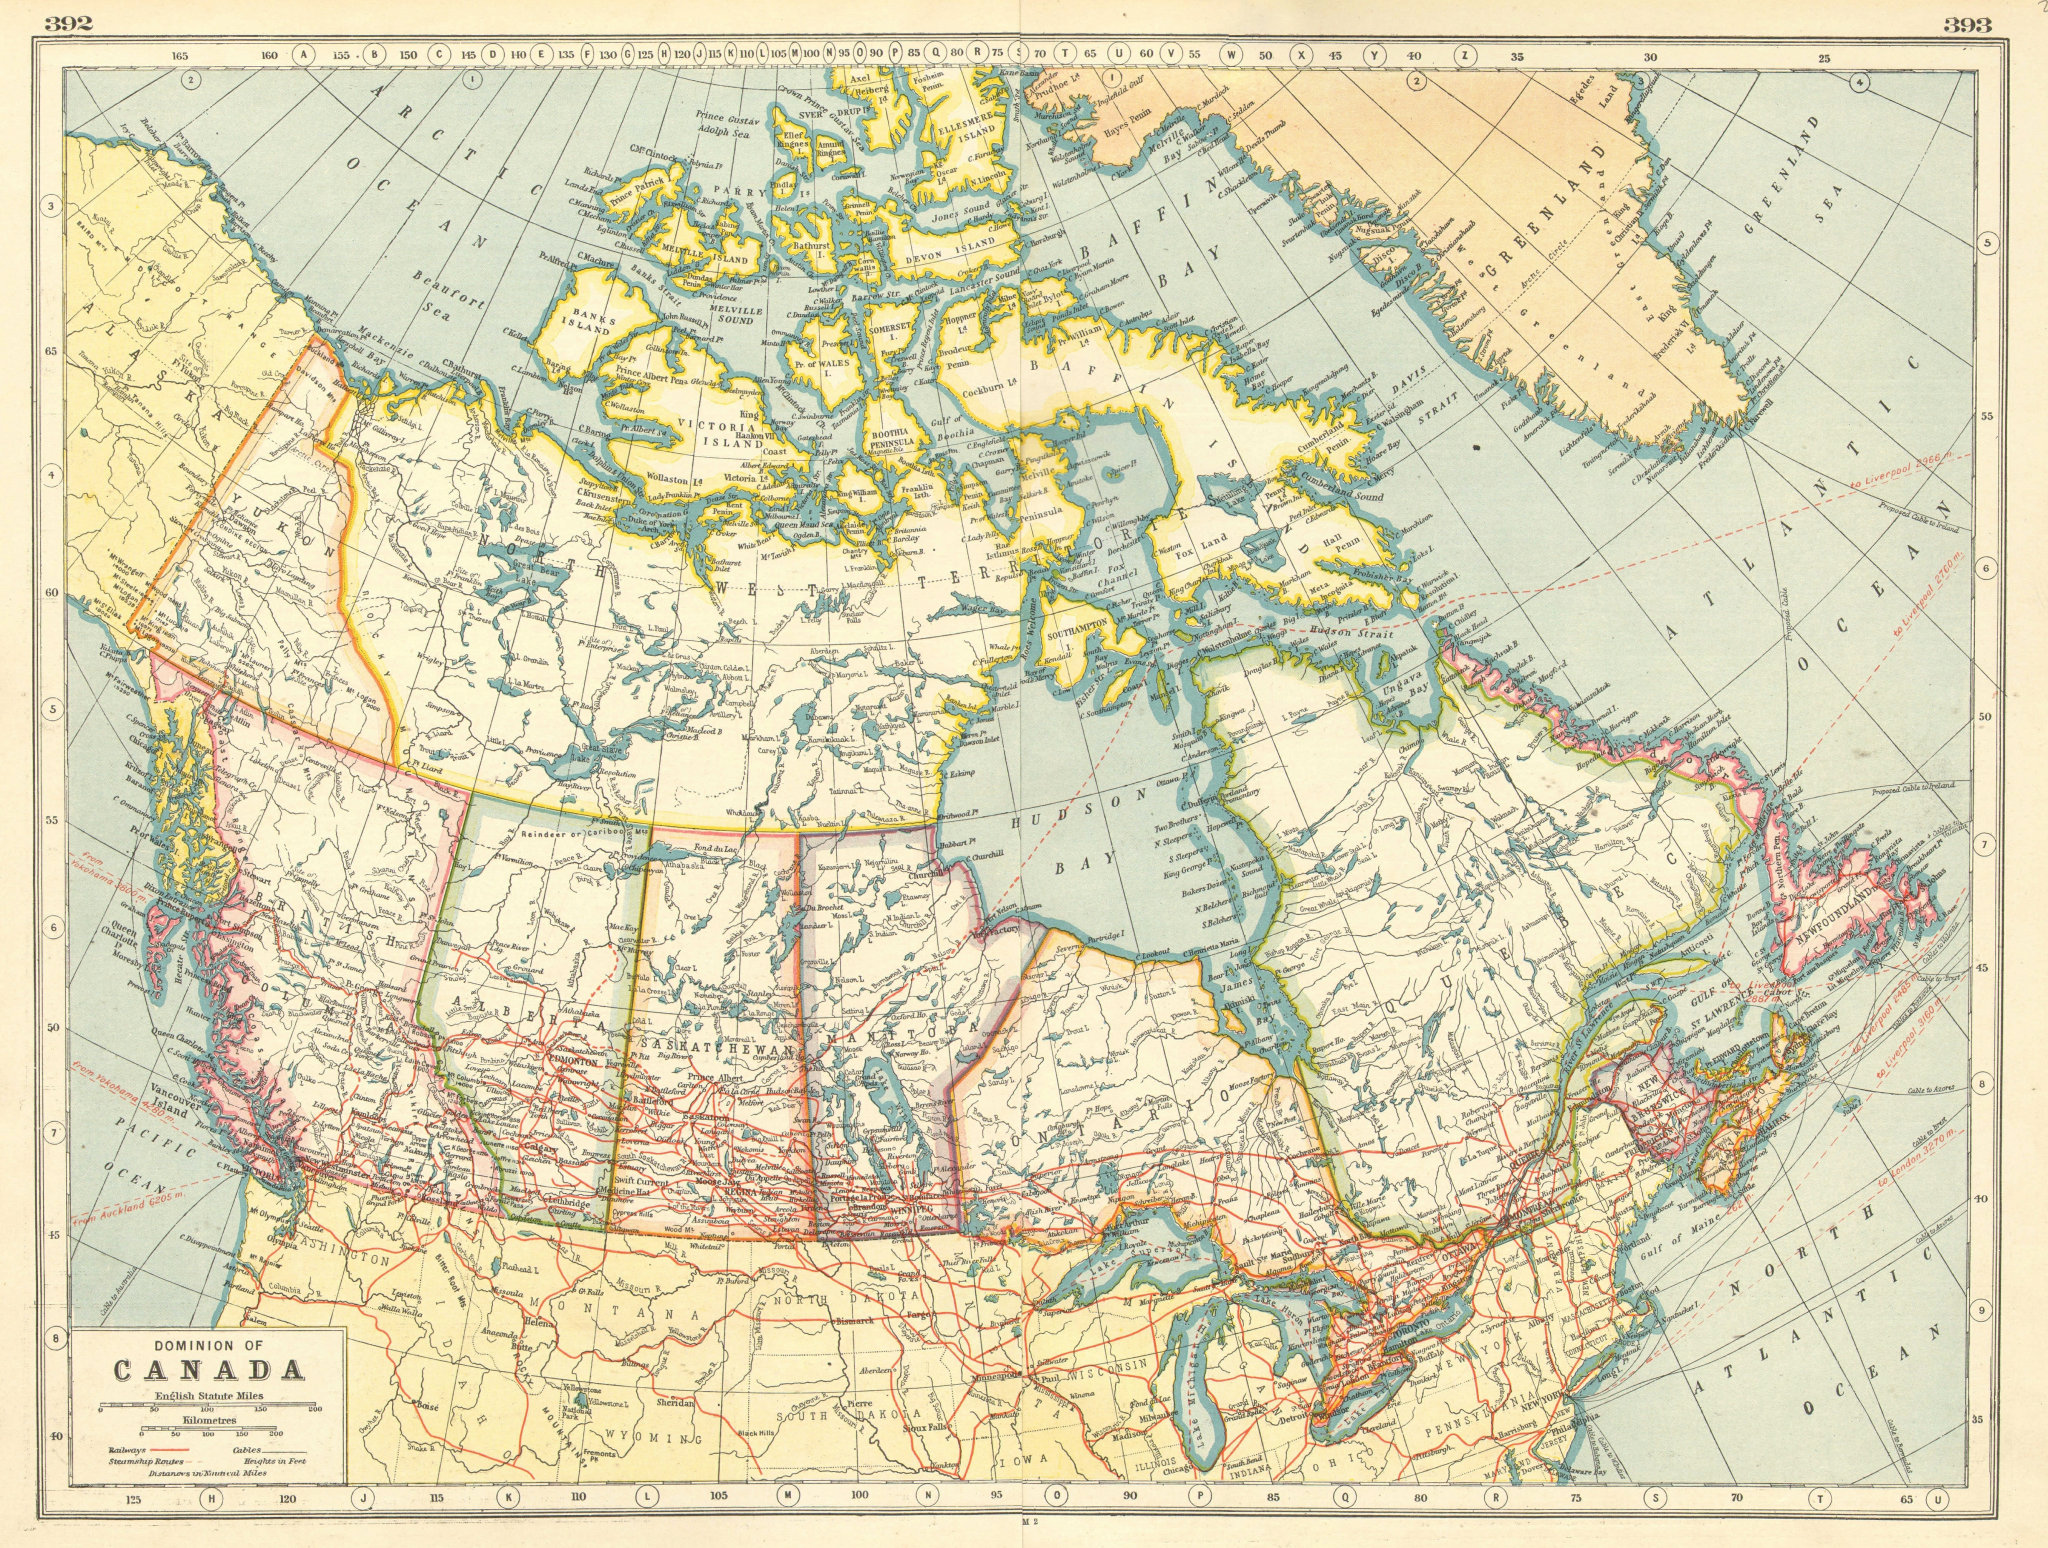 Associate Product CANADA. Dominion of Canada. HARMSWORTH 1920 old antique vintage map plan chart